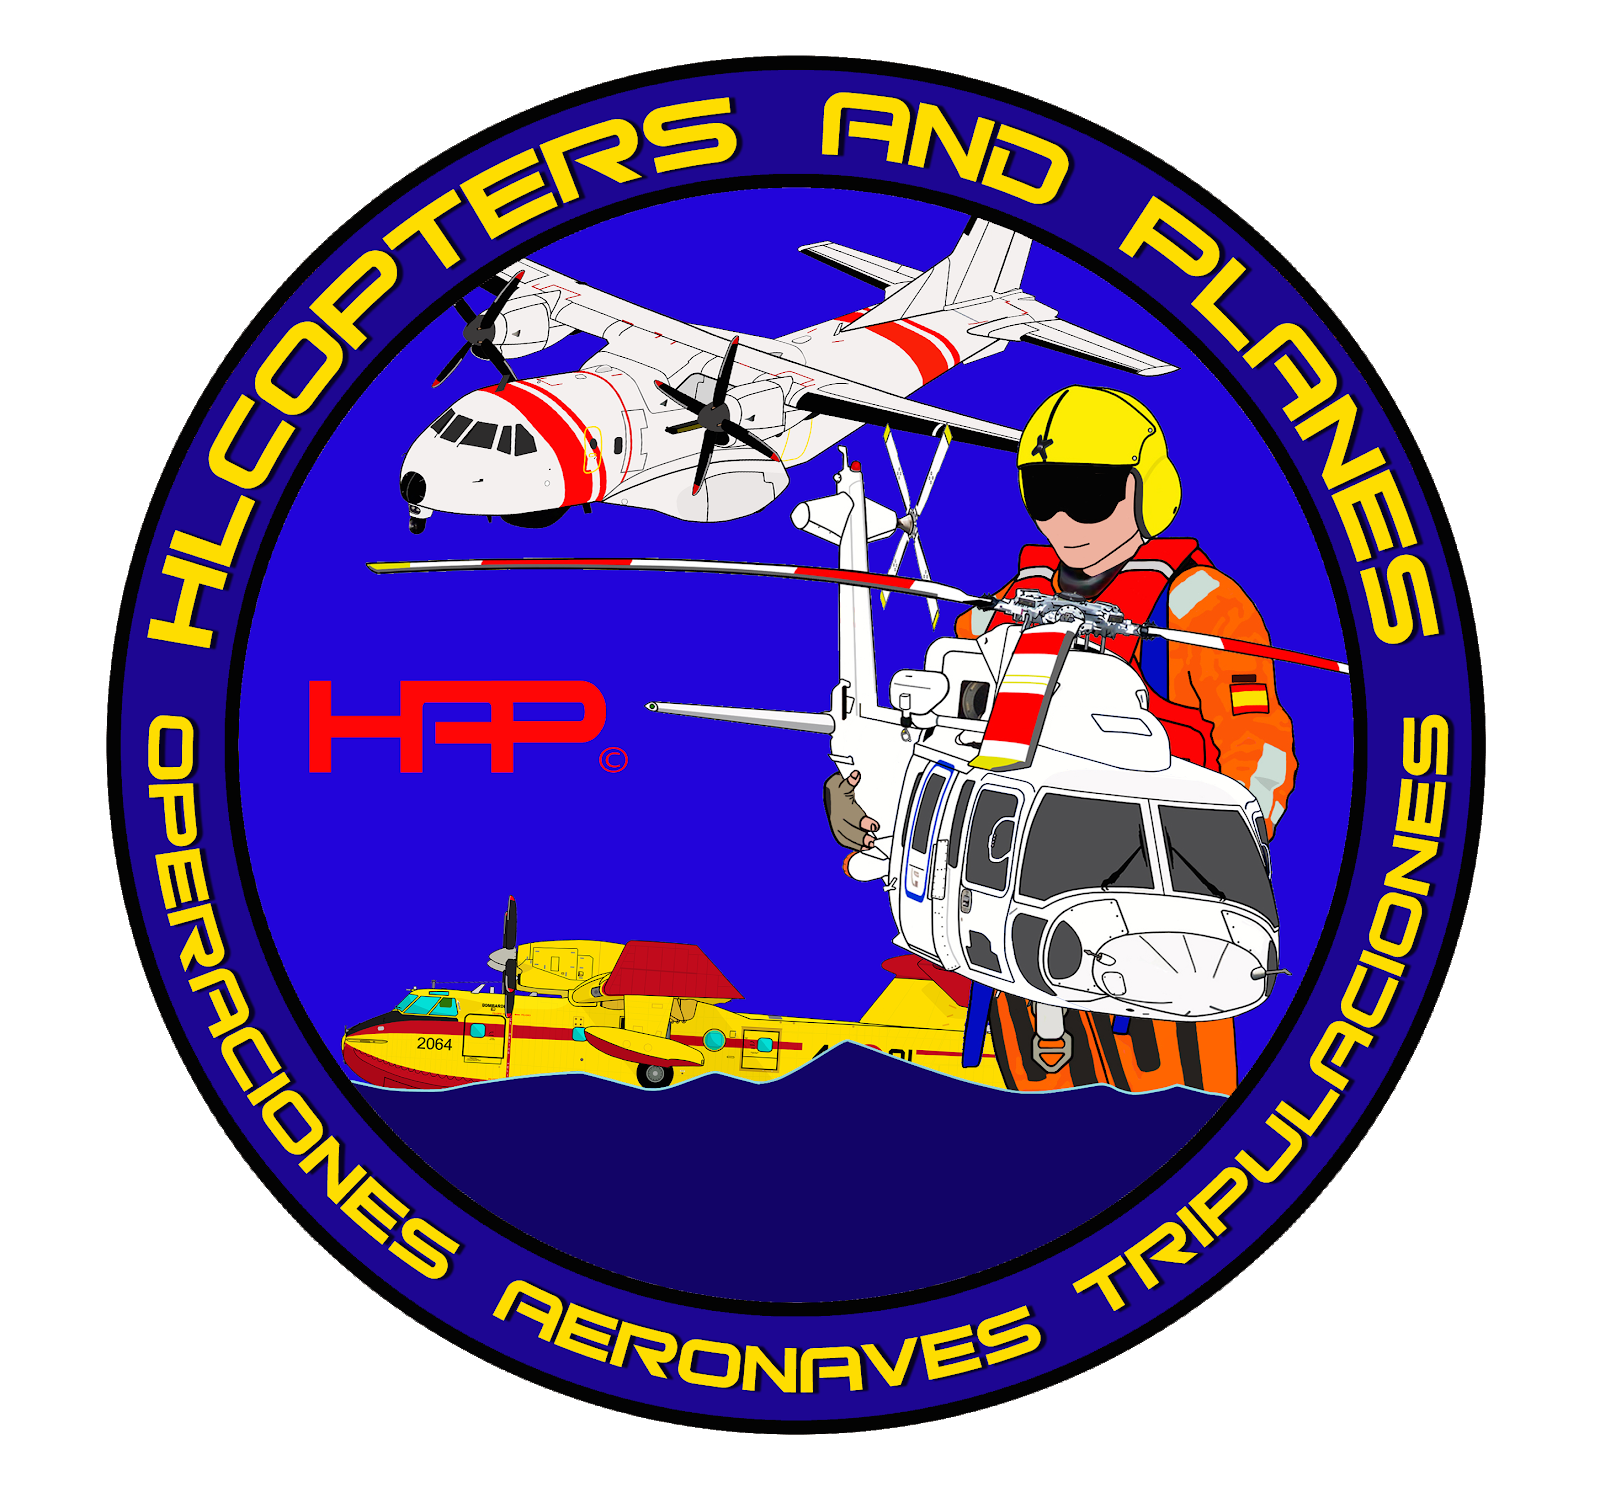 Hlcopters.com